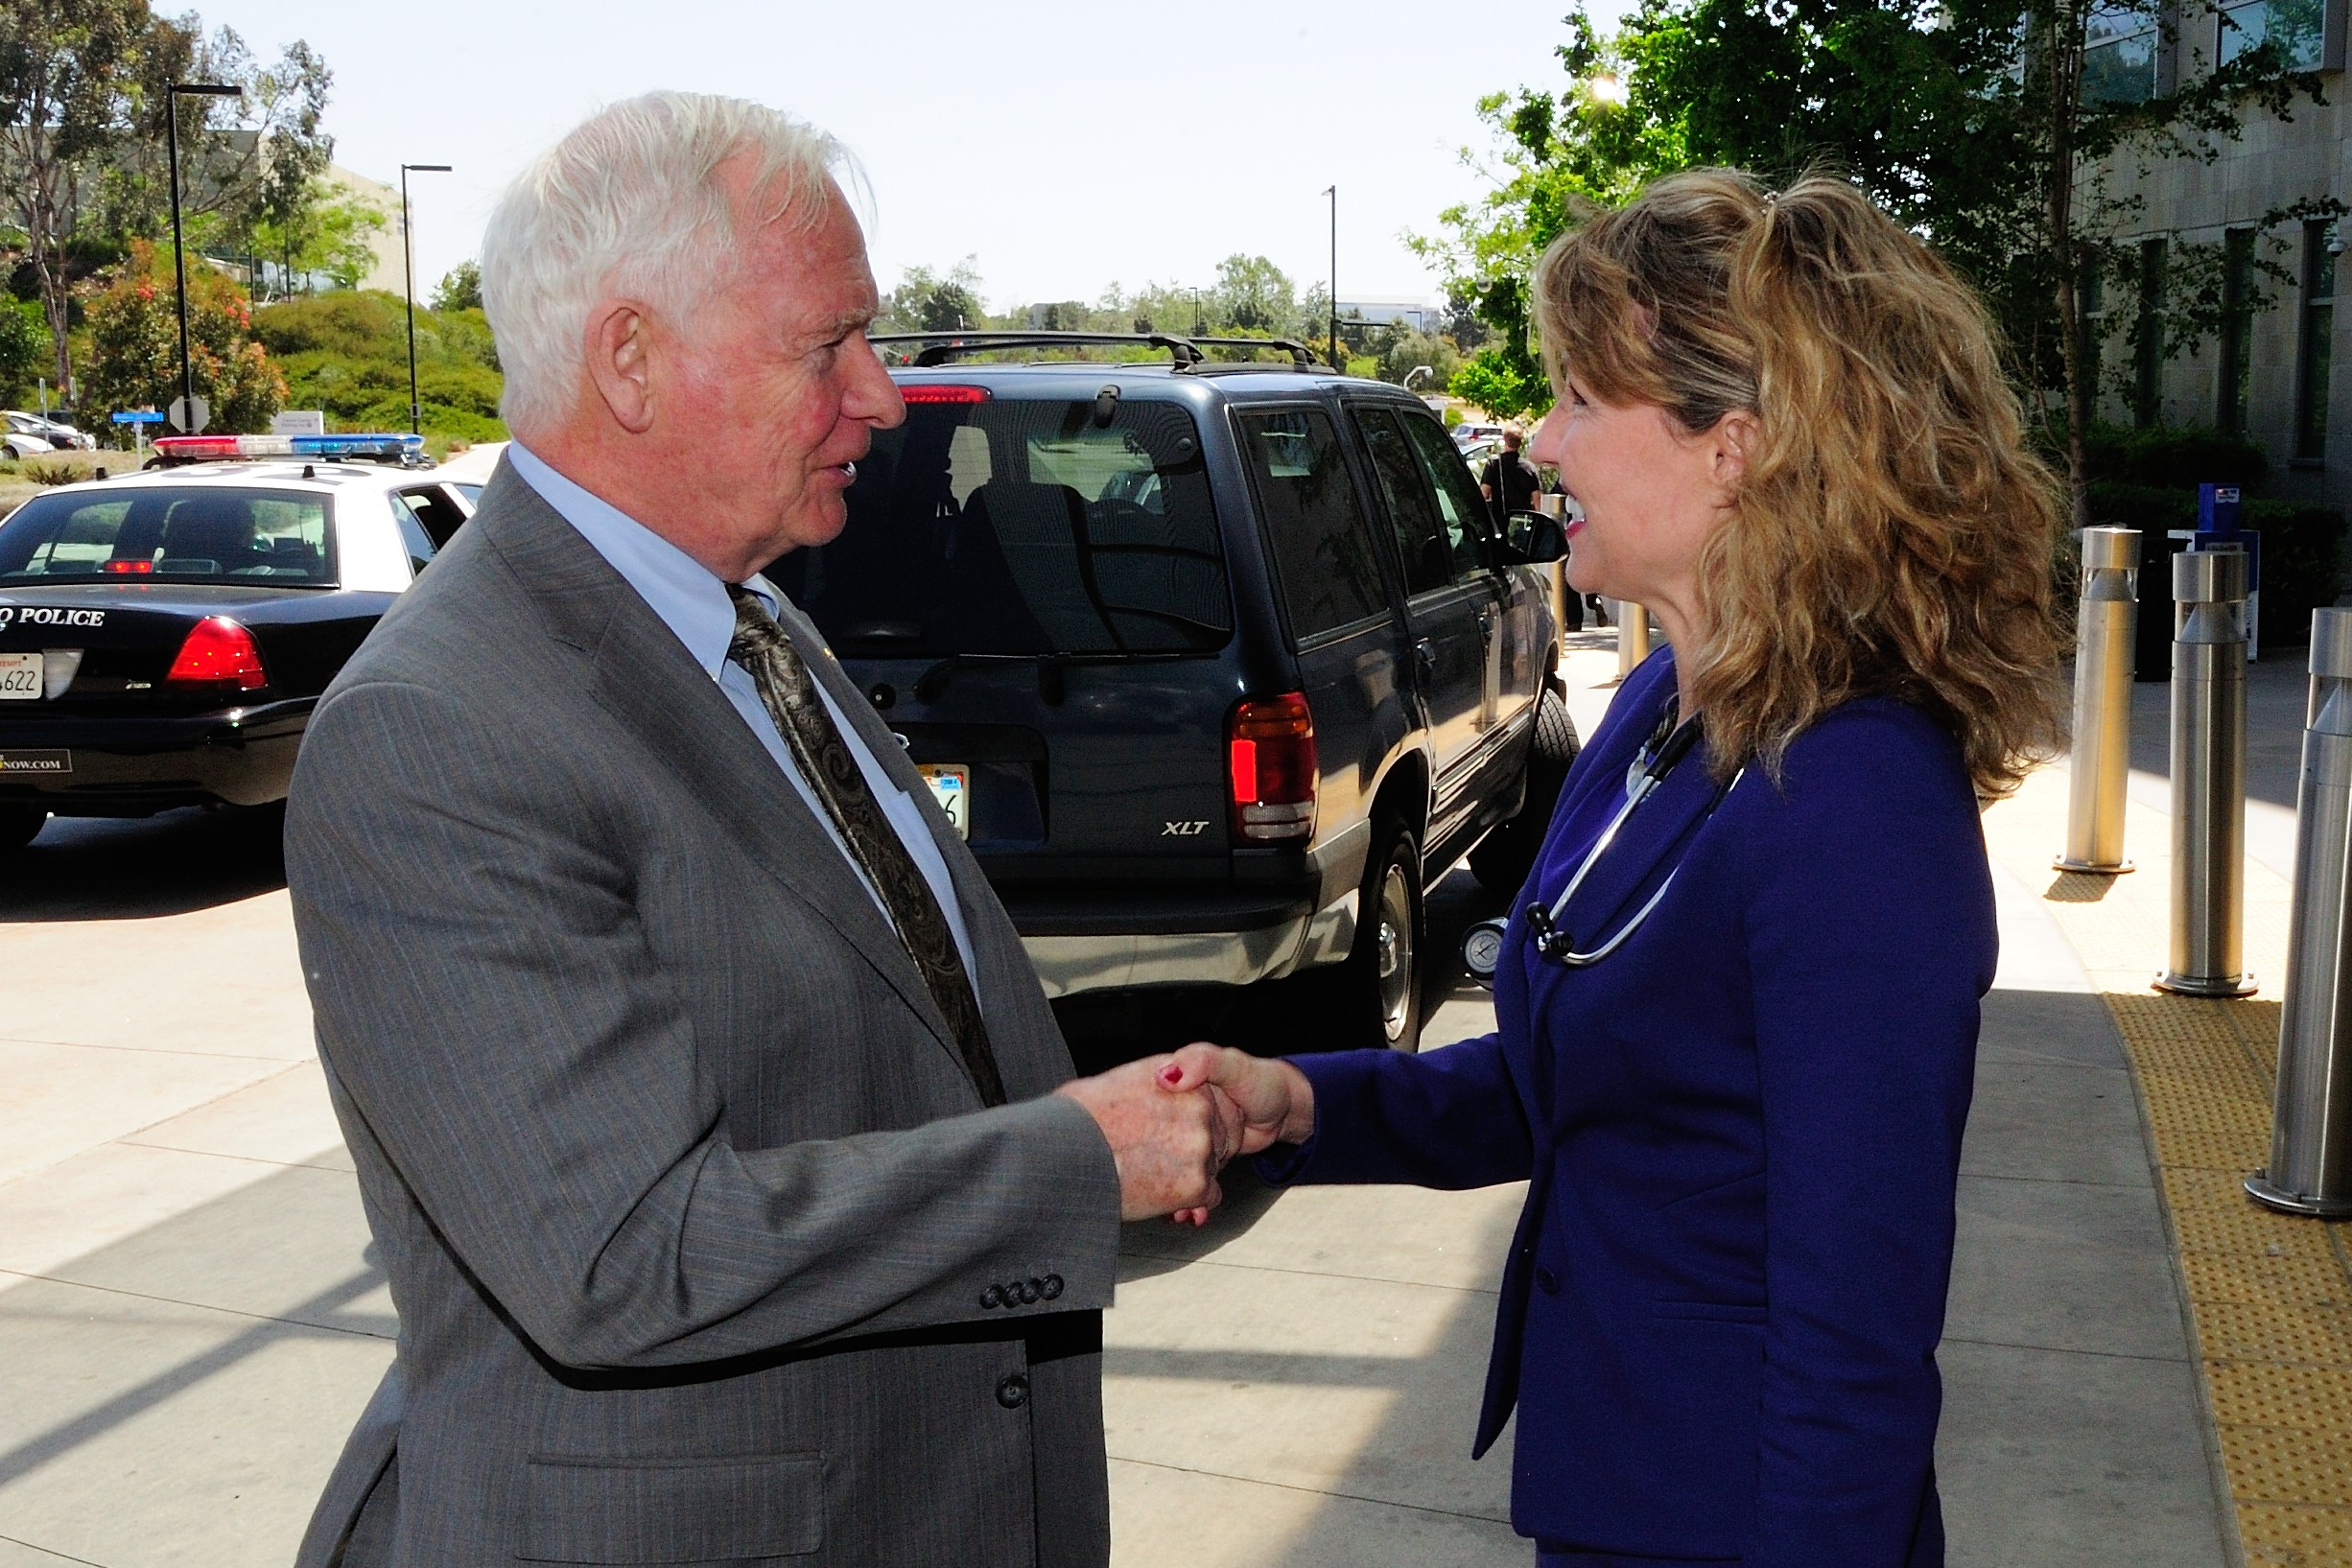 Upon his arrival at the Moores Cancer Center at the University of California San Diego (UCSD), the Governor General was welcomed by Dr. Catriona Jamieson, Director of Stem Cell Research. His Excellency participated in a discussion with researchers from UCSD and the Canada-California Strategic Innovation Partnership in Cancer Stem Cells (CCSIP) to review the progress of this successful initiative and discuss future opportunities.